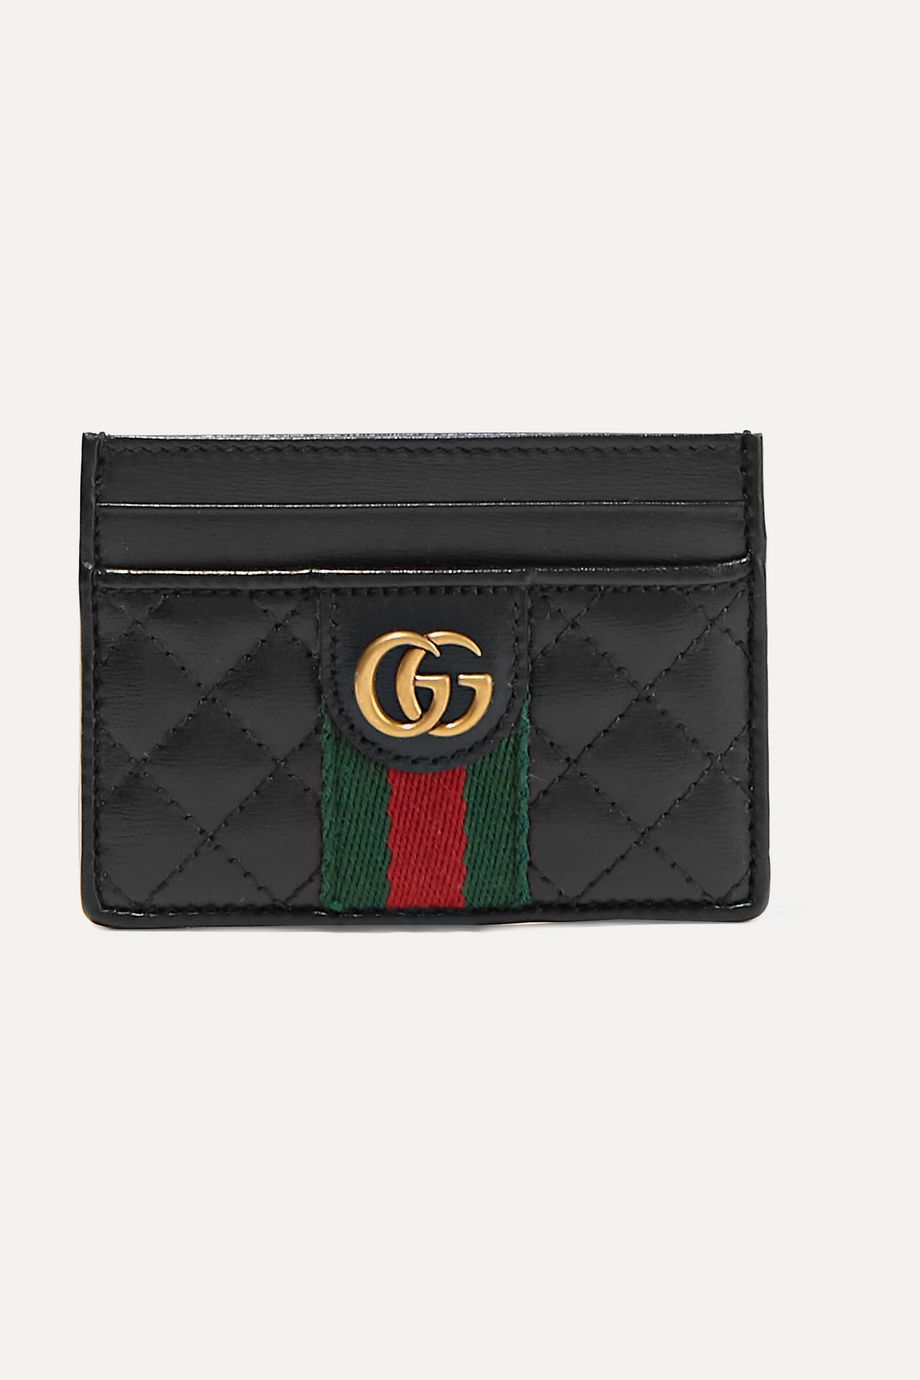 Gucci Quilted leather cardholder